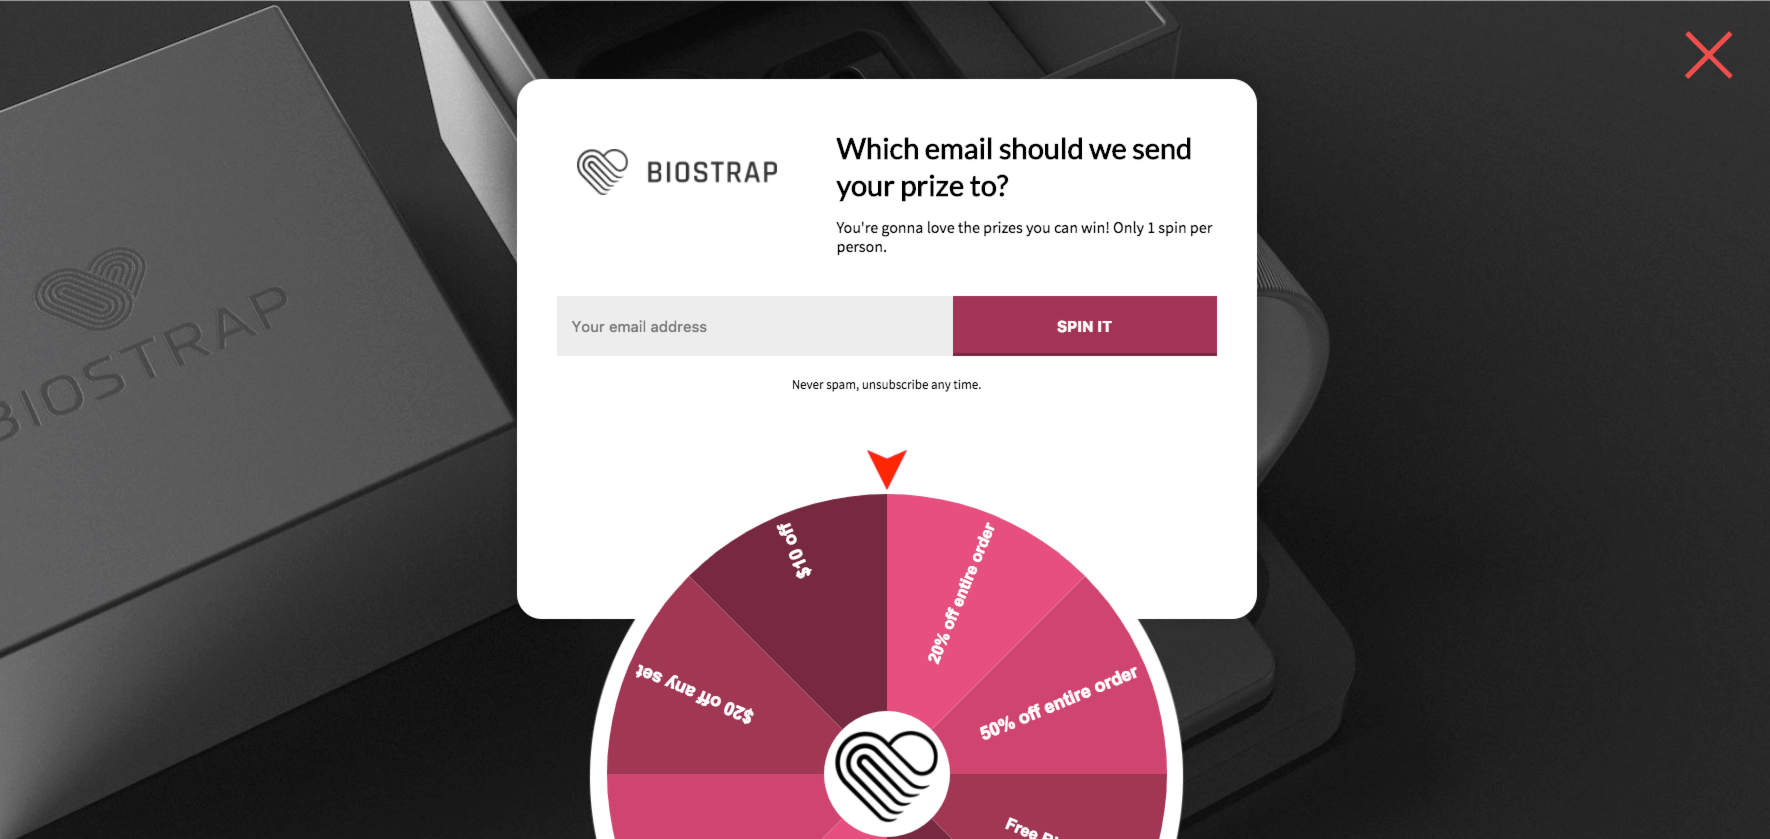 biostrap 8xd popup conversion rate